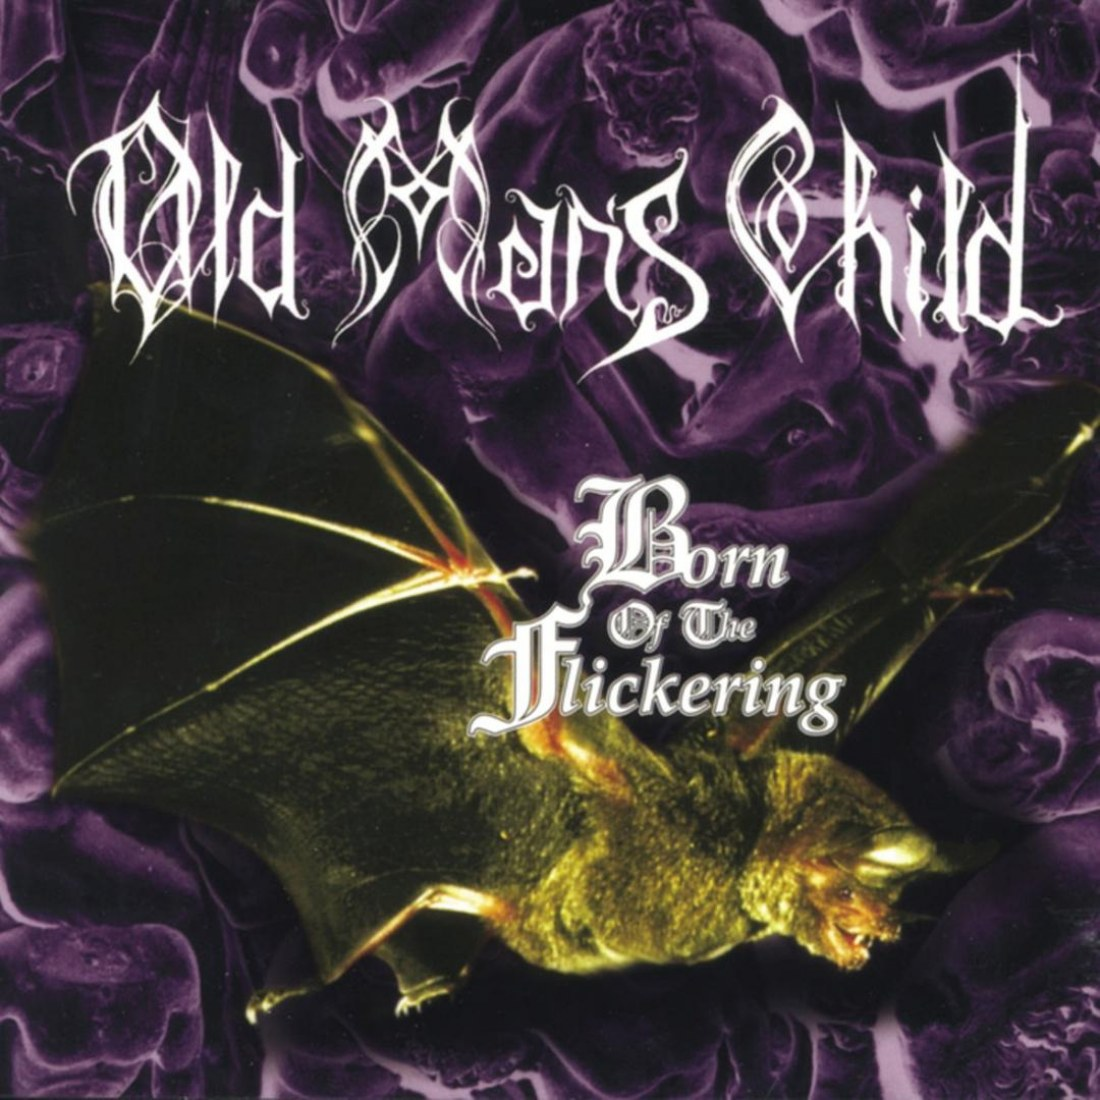 Review for Old Man's Child - Born of the Flickering